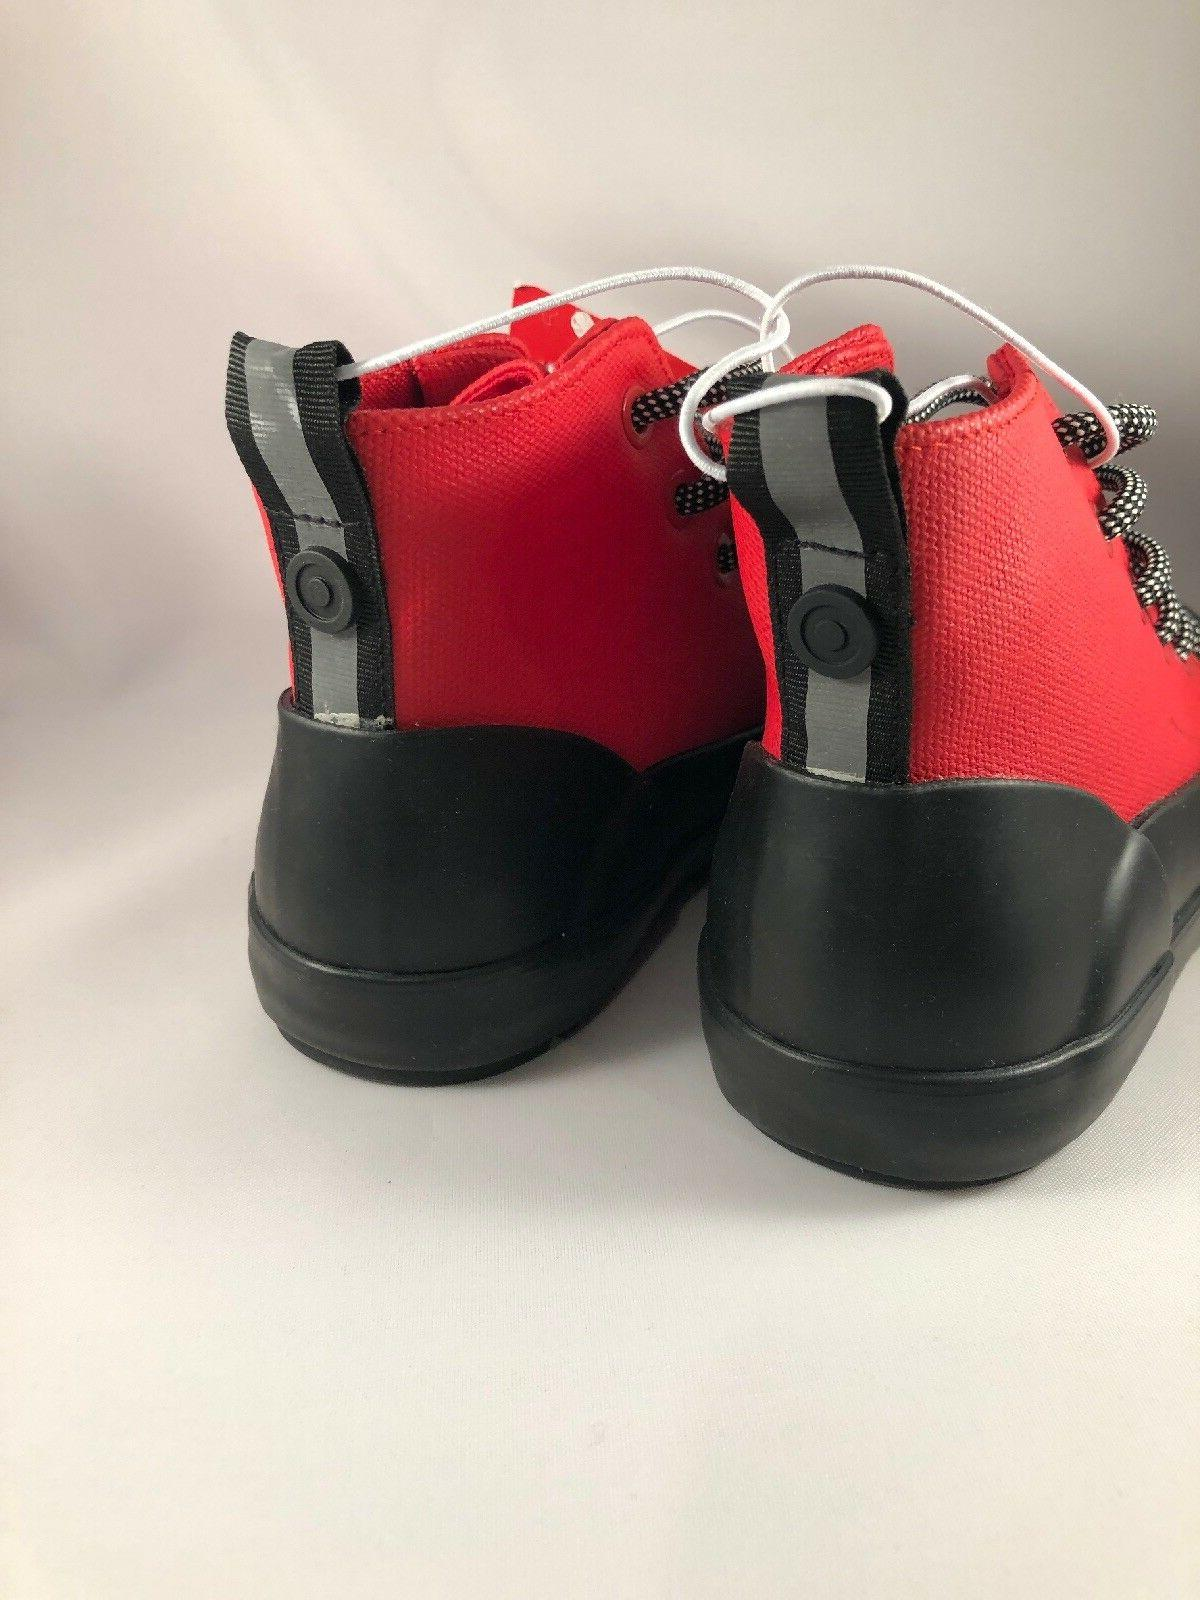 HUNTER Dipped High Top Sneakers Size TARGET